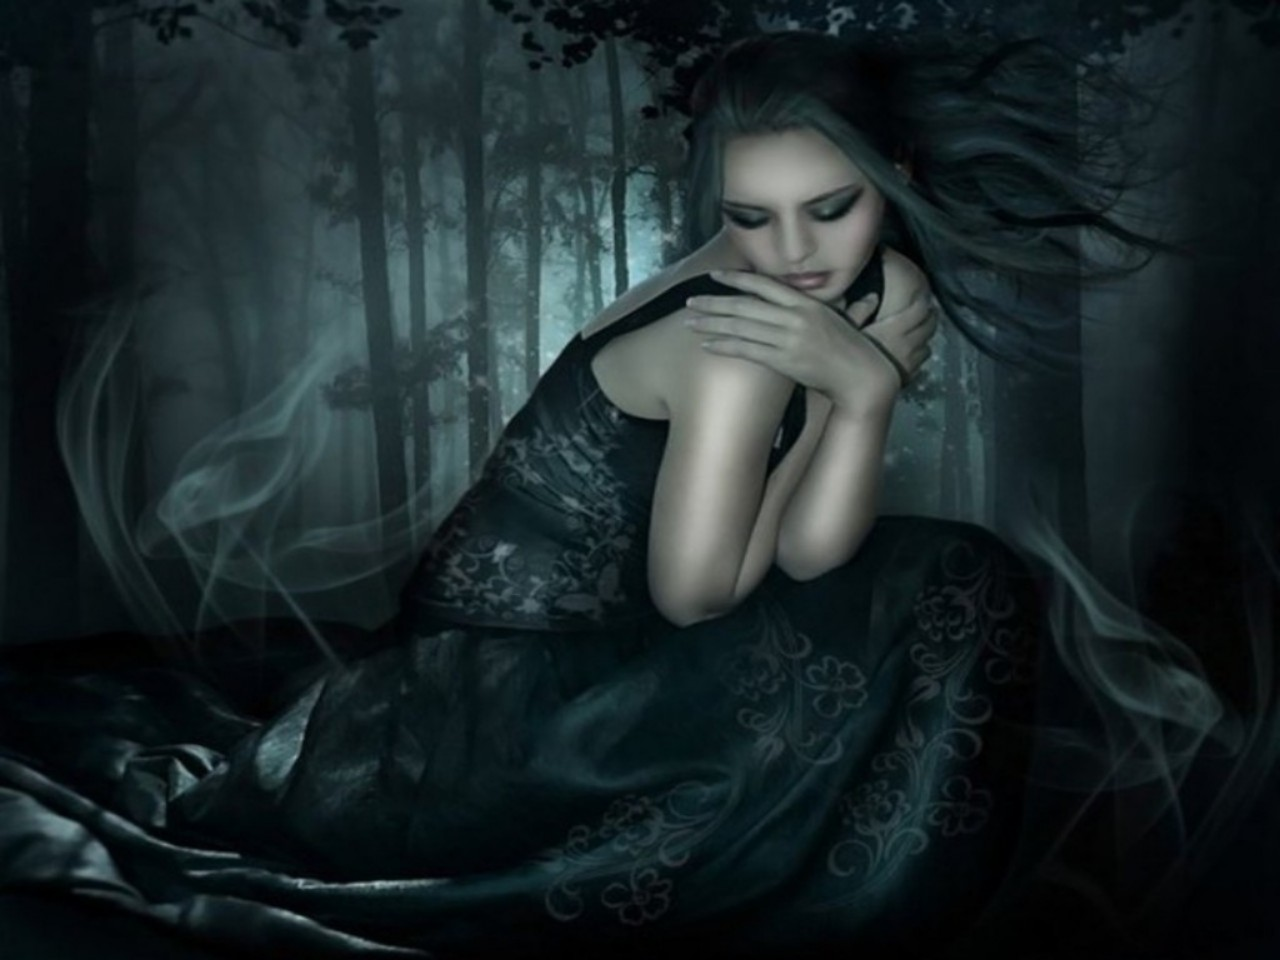 Beautiful Gothic Wallpapers: Gothic & Dark Wallpapers